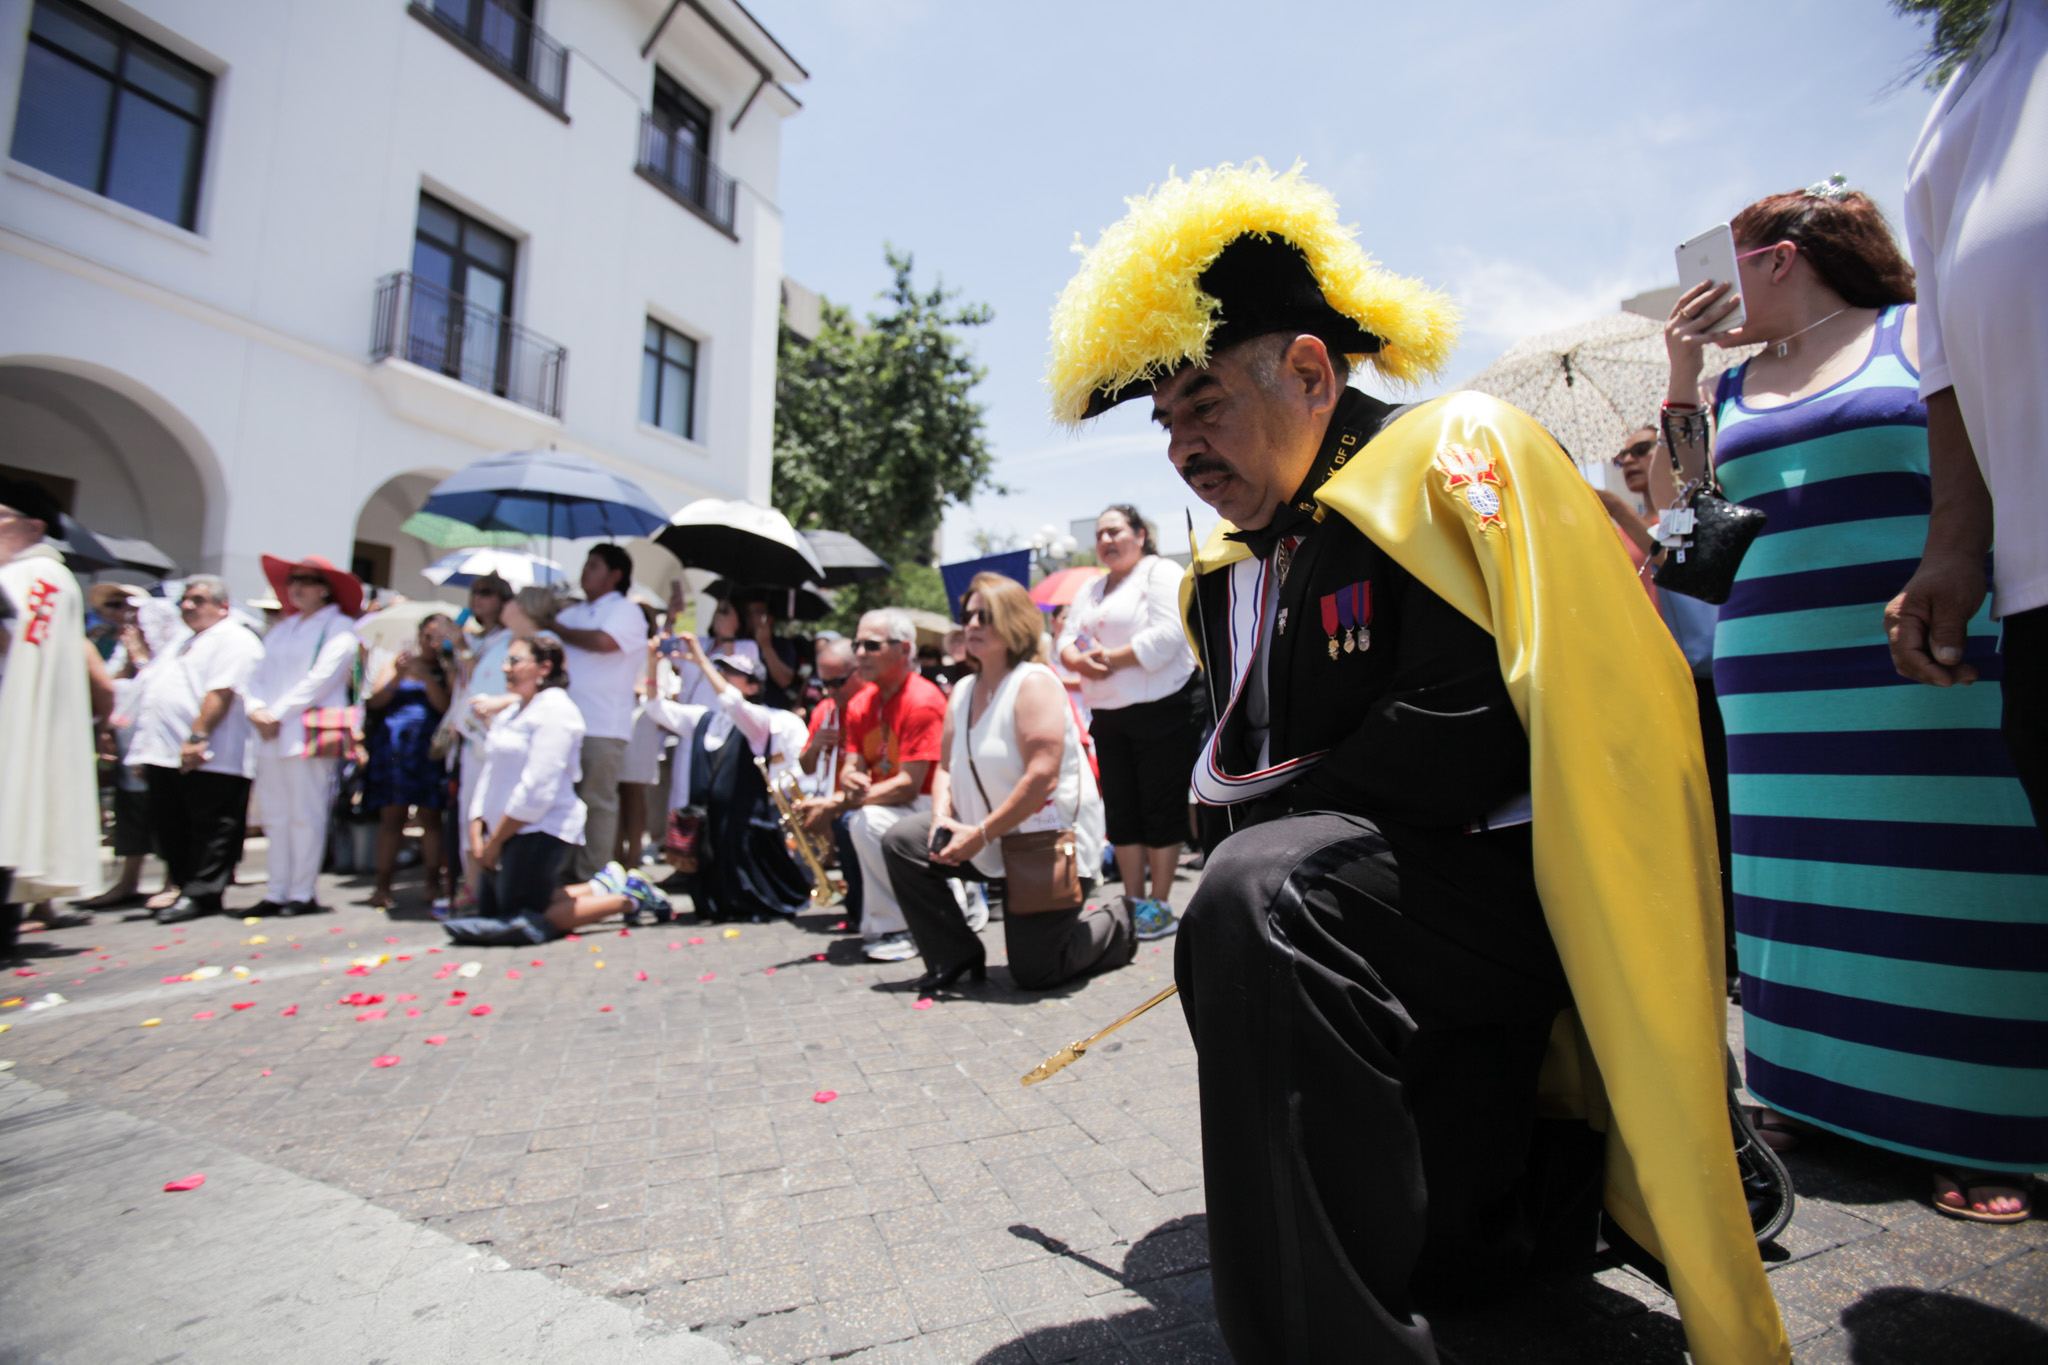 A Knight of Colombus kneels in prayer during the Feast of Corpus Christi Procession held in downtown San Antonio.